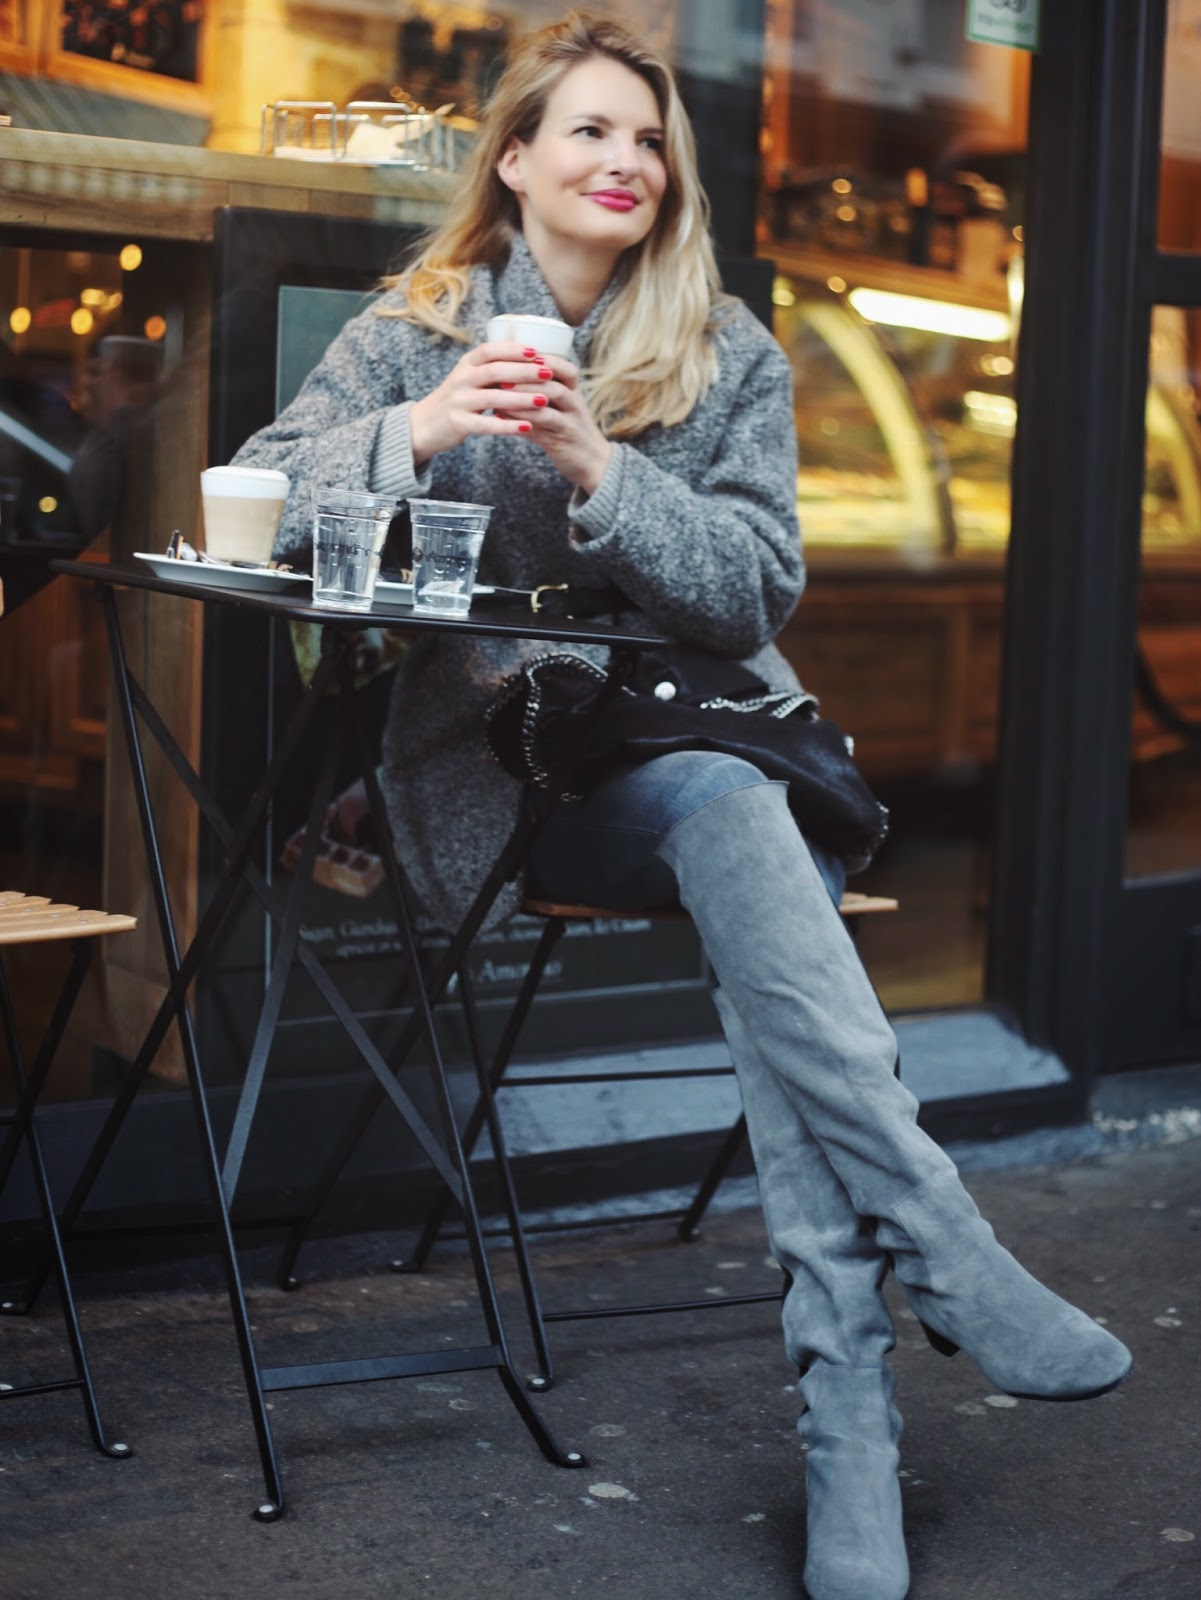 grey overknee boots, zara overknee boots, grey boots zara, grey coat, grey outfit, stella mccartney falabella bag, street style london, coffee break, fashion blogger london